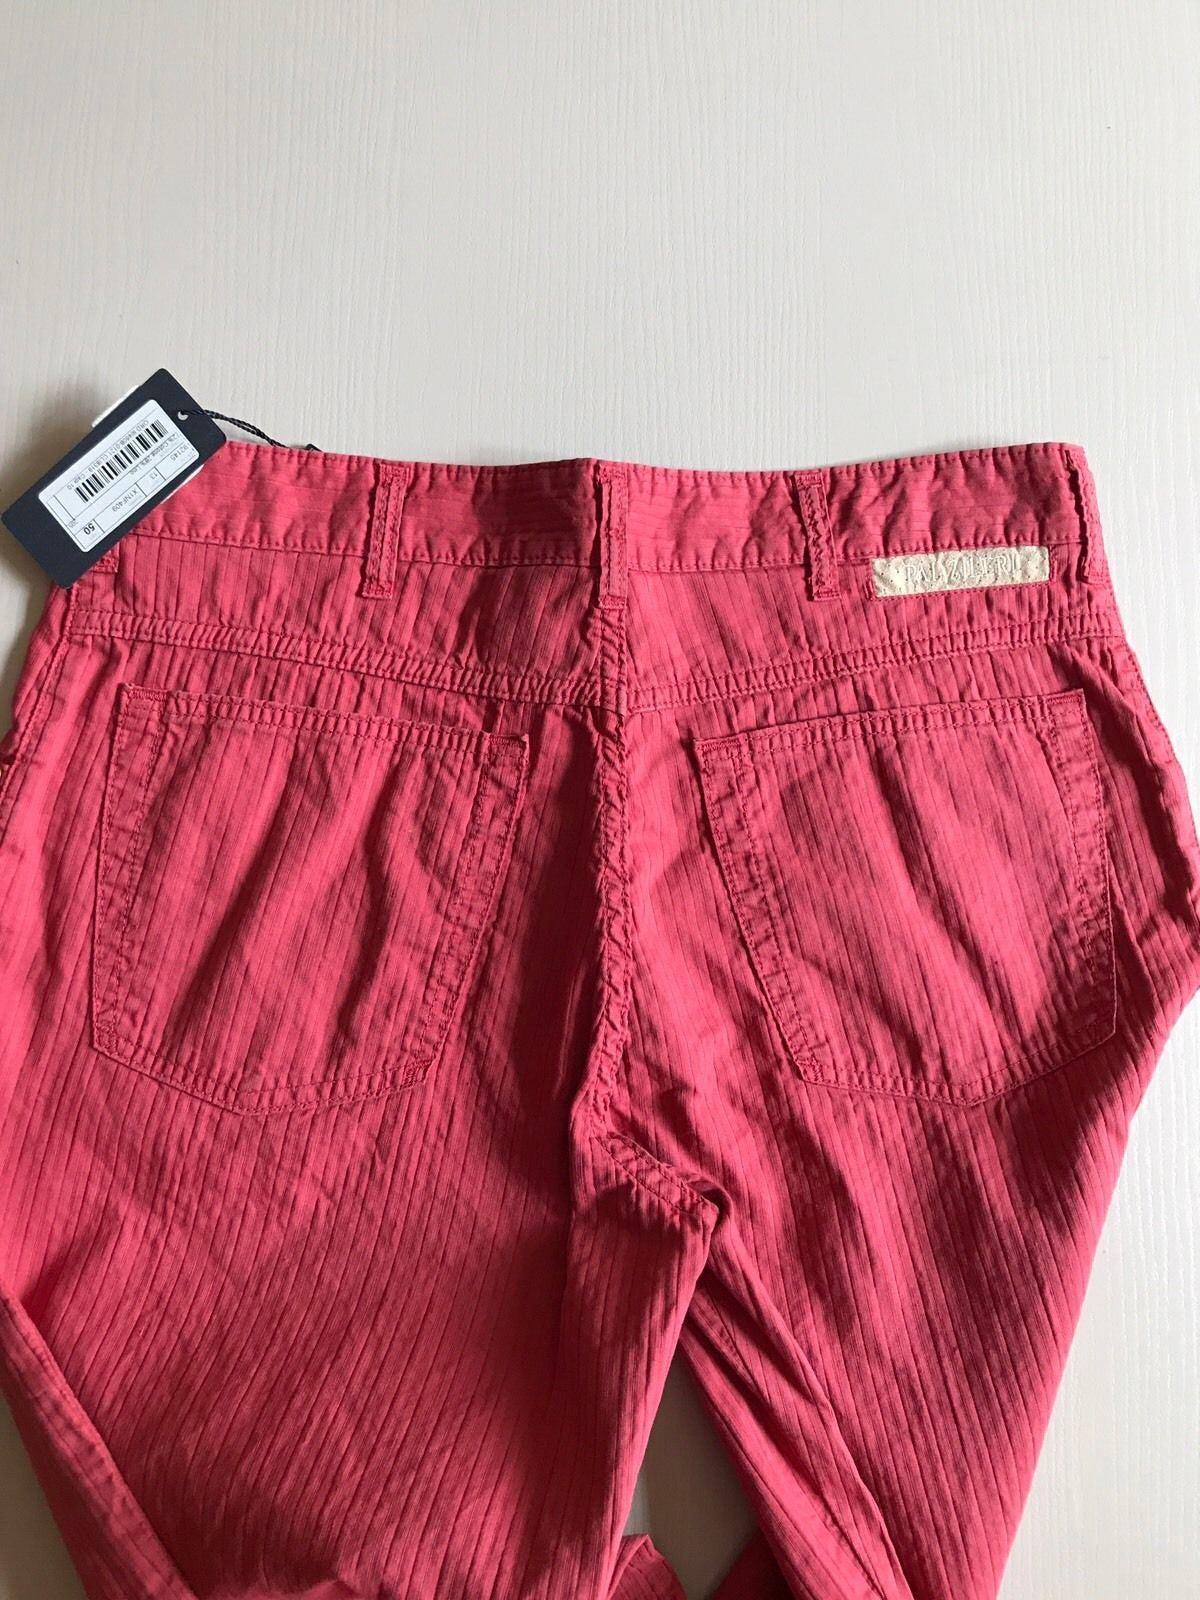 NWT $545 Pal Zileri Mens Pants Jeans Red 30 US ( 46 Eur ) Italy - BAYSUPERSTORE